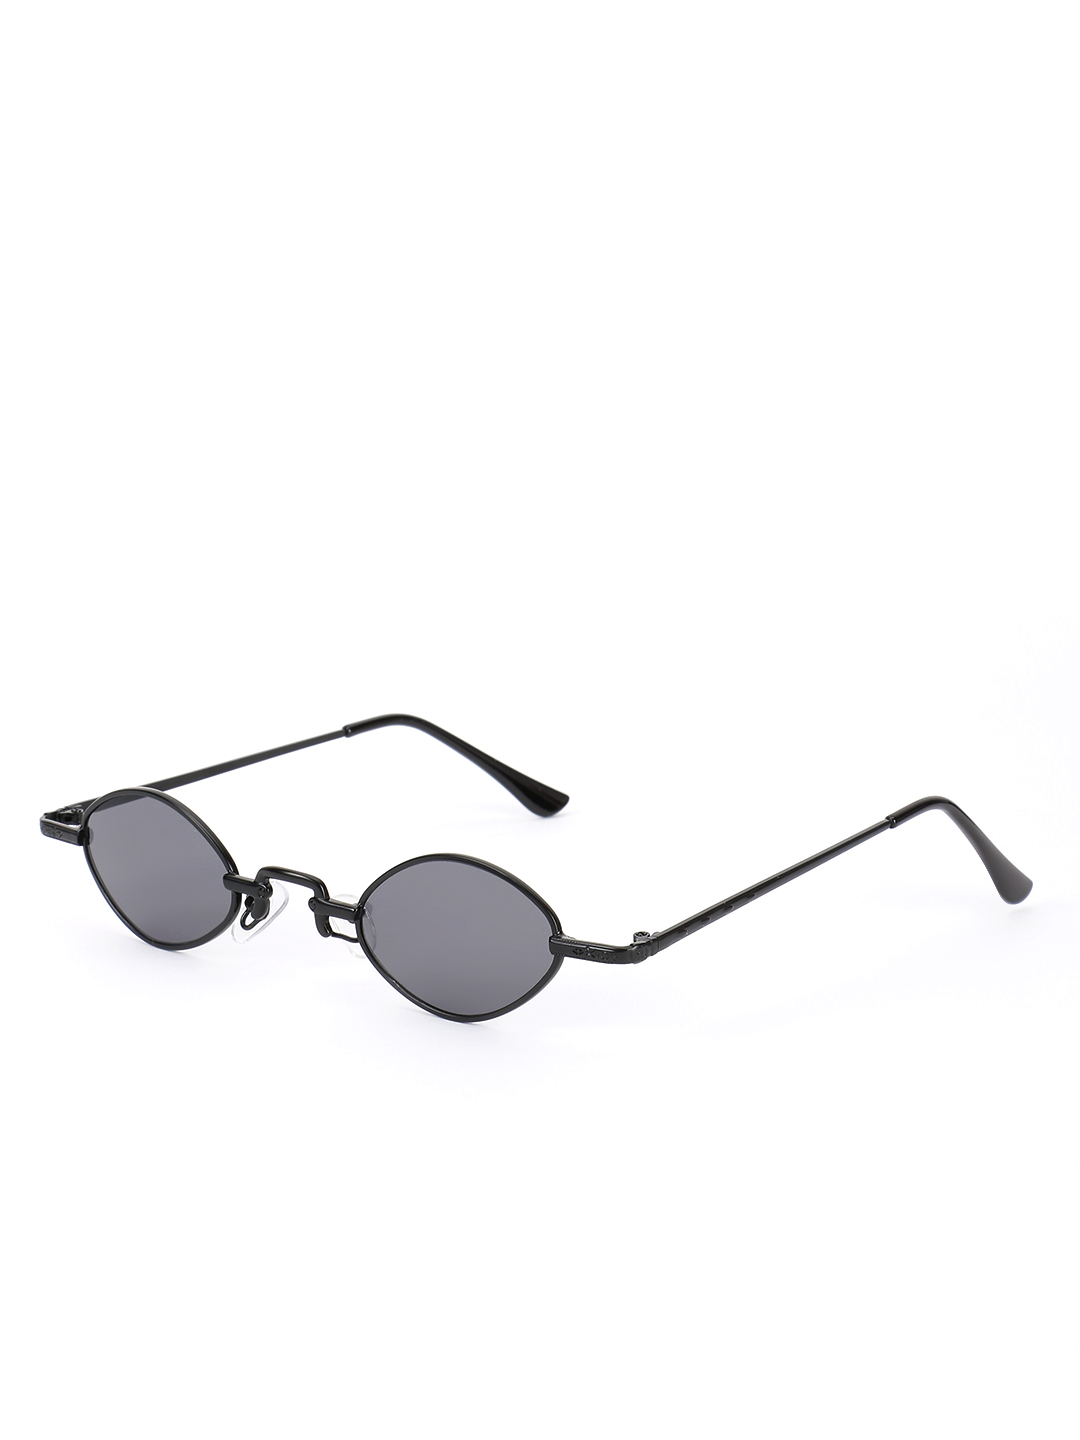 Sneak-a-Peek Black Micro Coloured Retro Sunglasses 1